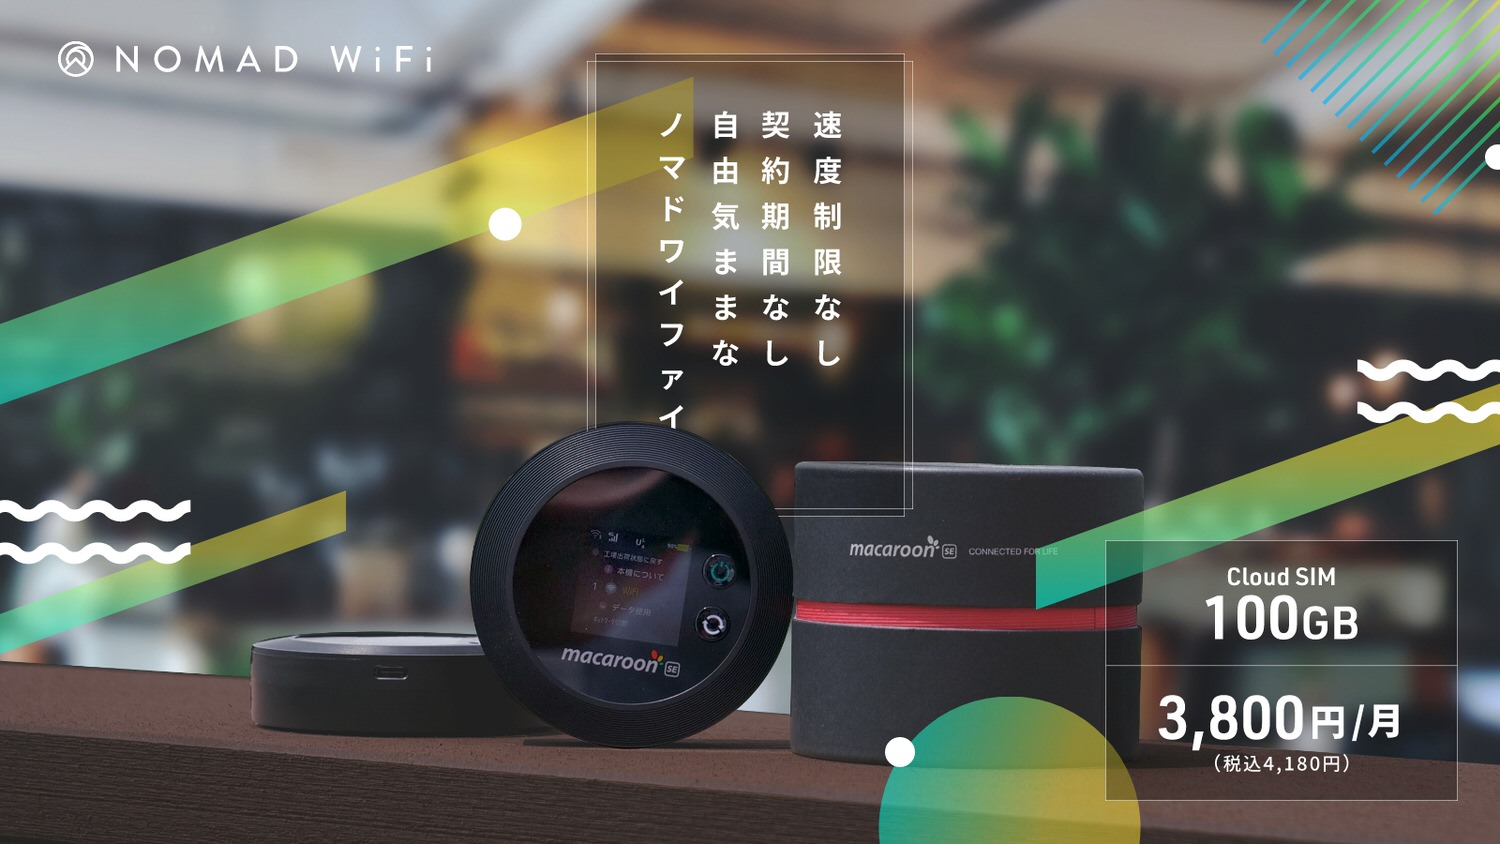 Nomad wifi release 01 04